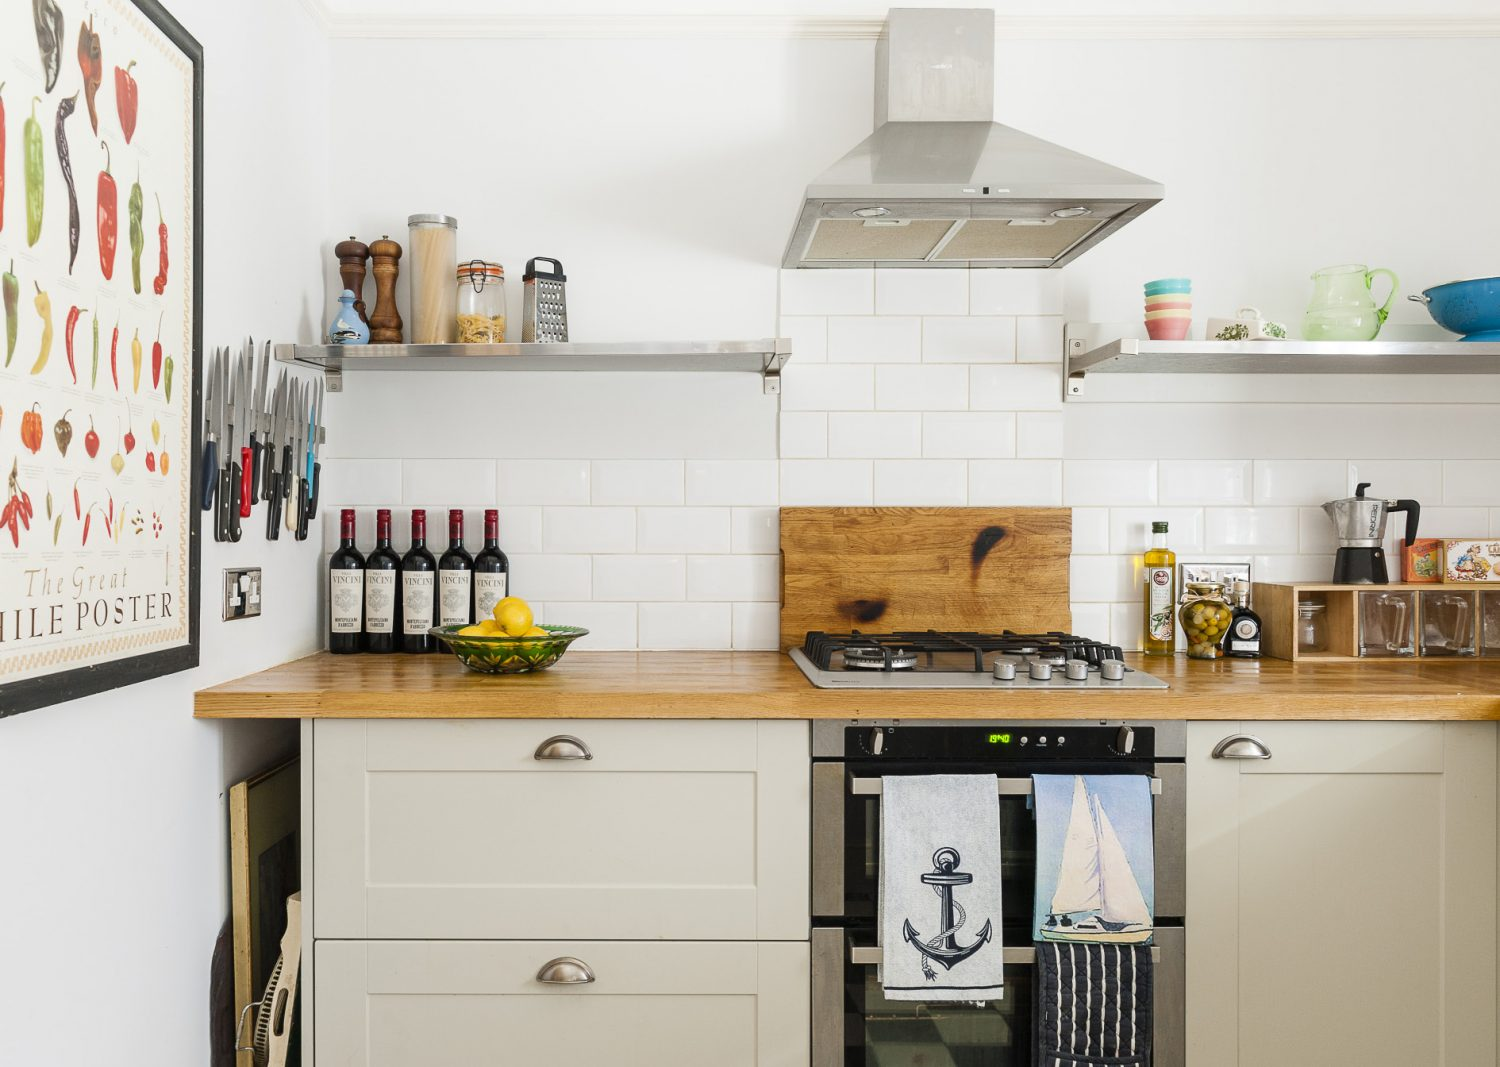 The kitchen tucks neatly into a room at the rear of the flat